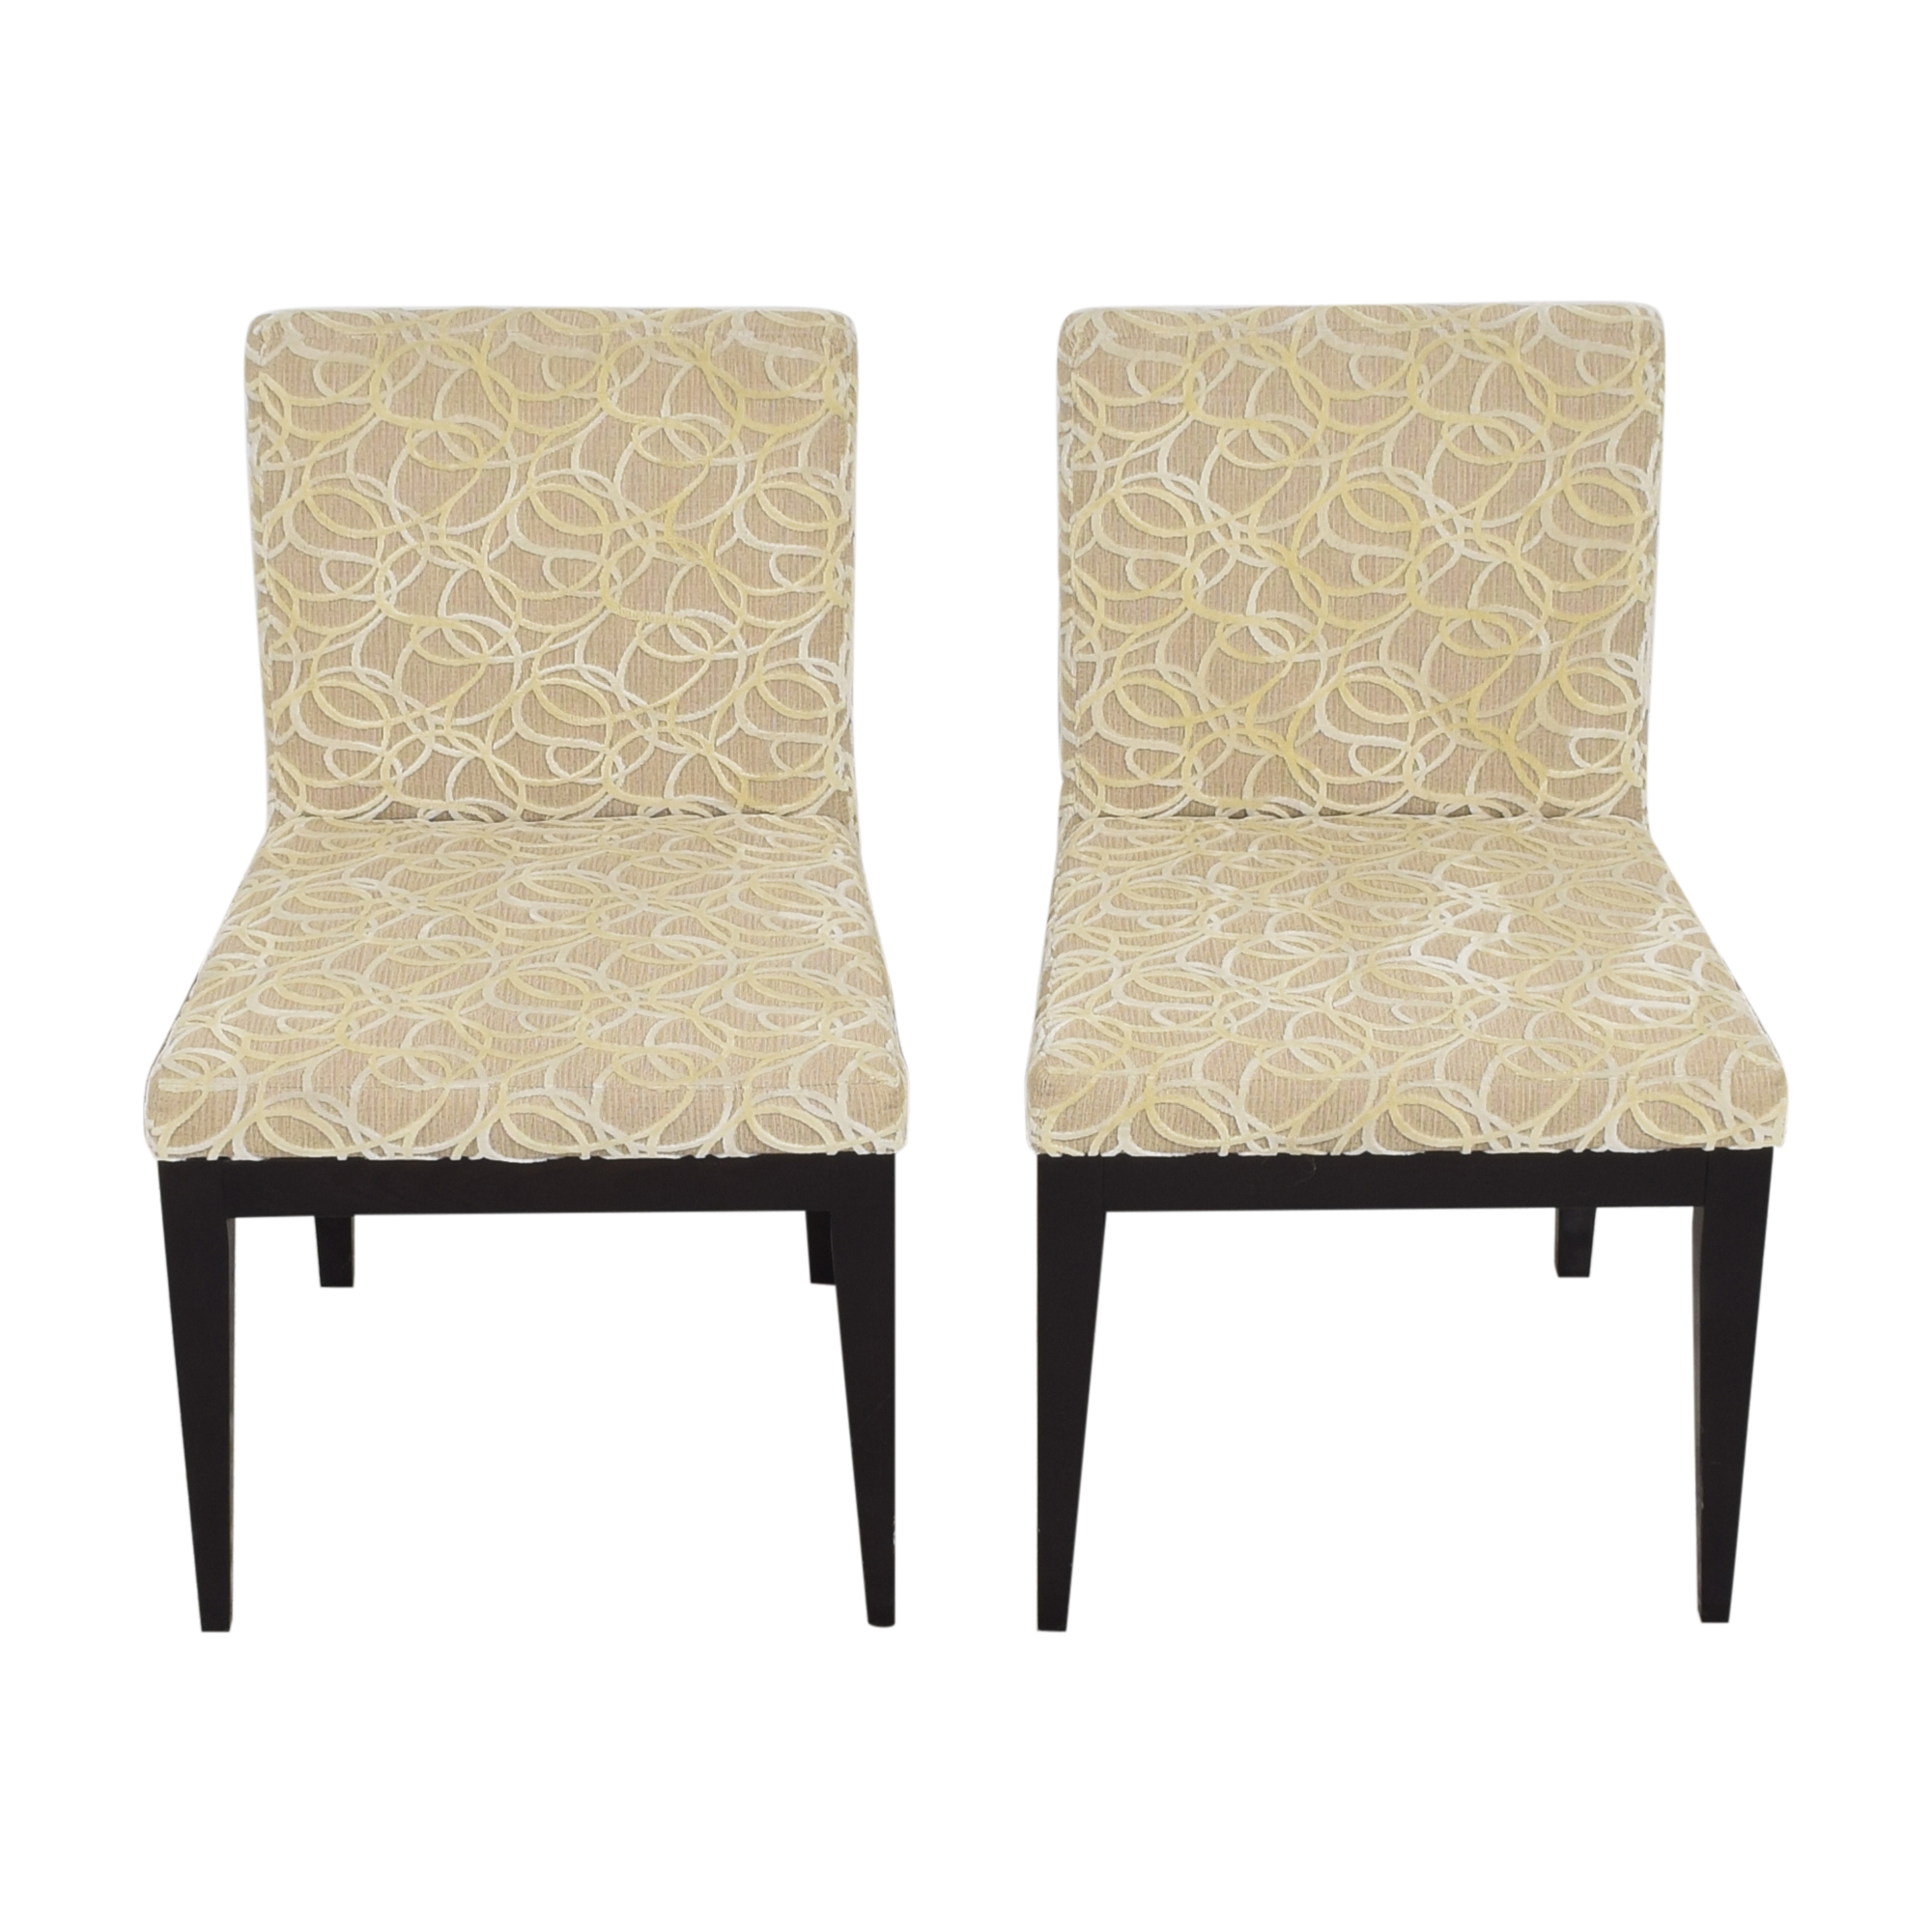 Bolier & Company Bolier & Company Upholstered Dining Chairs nyc